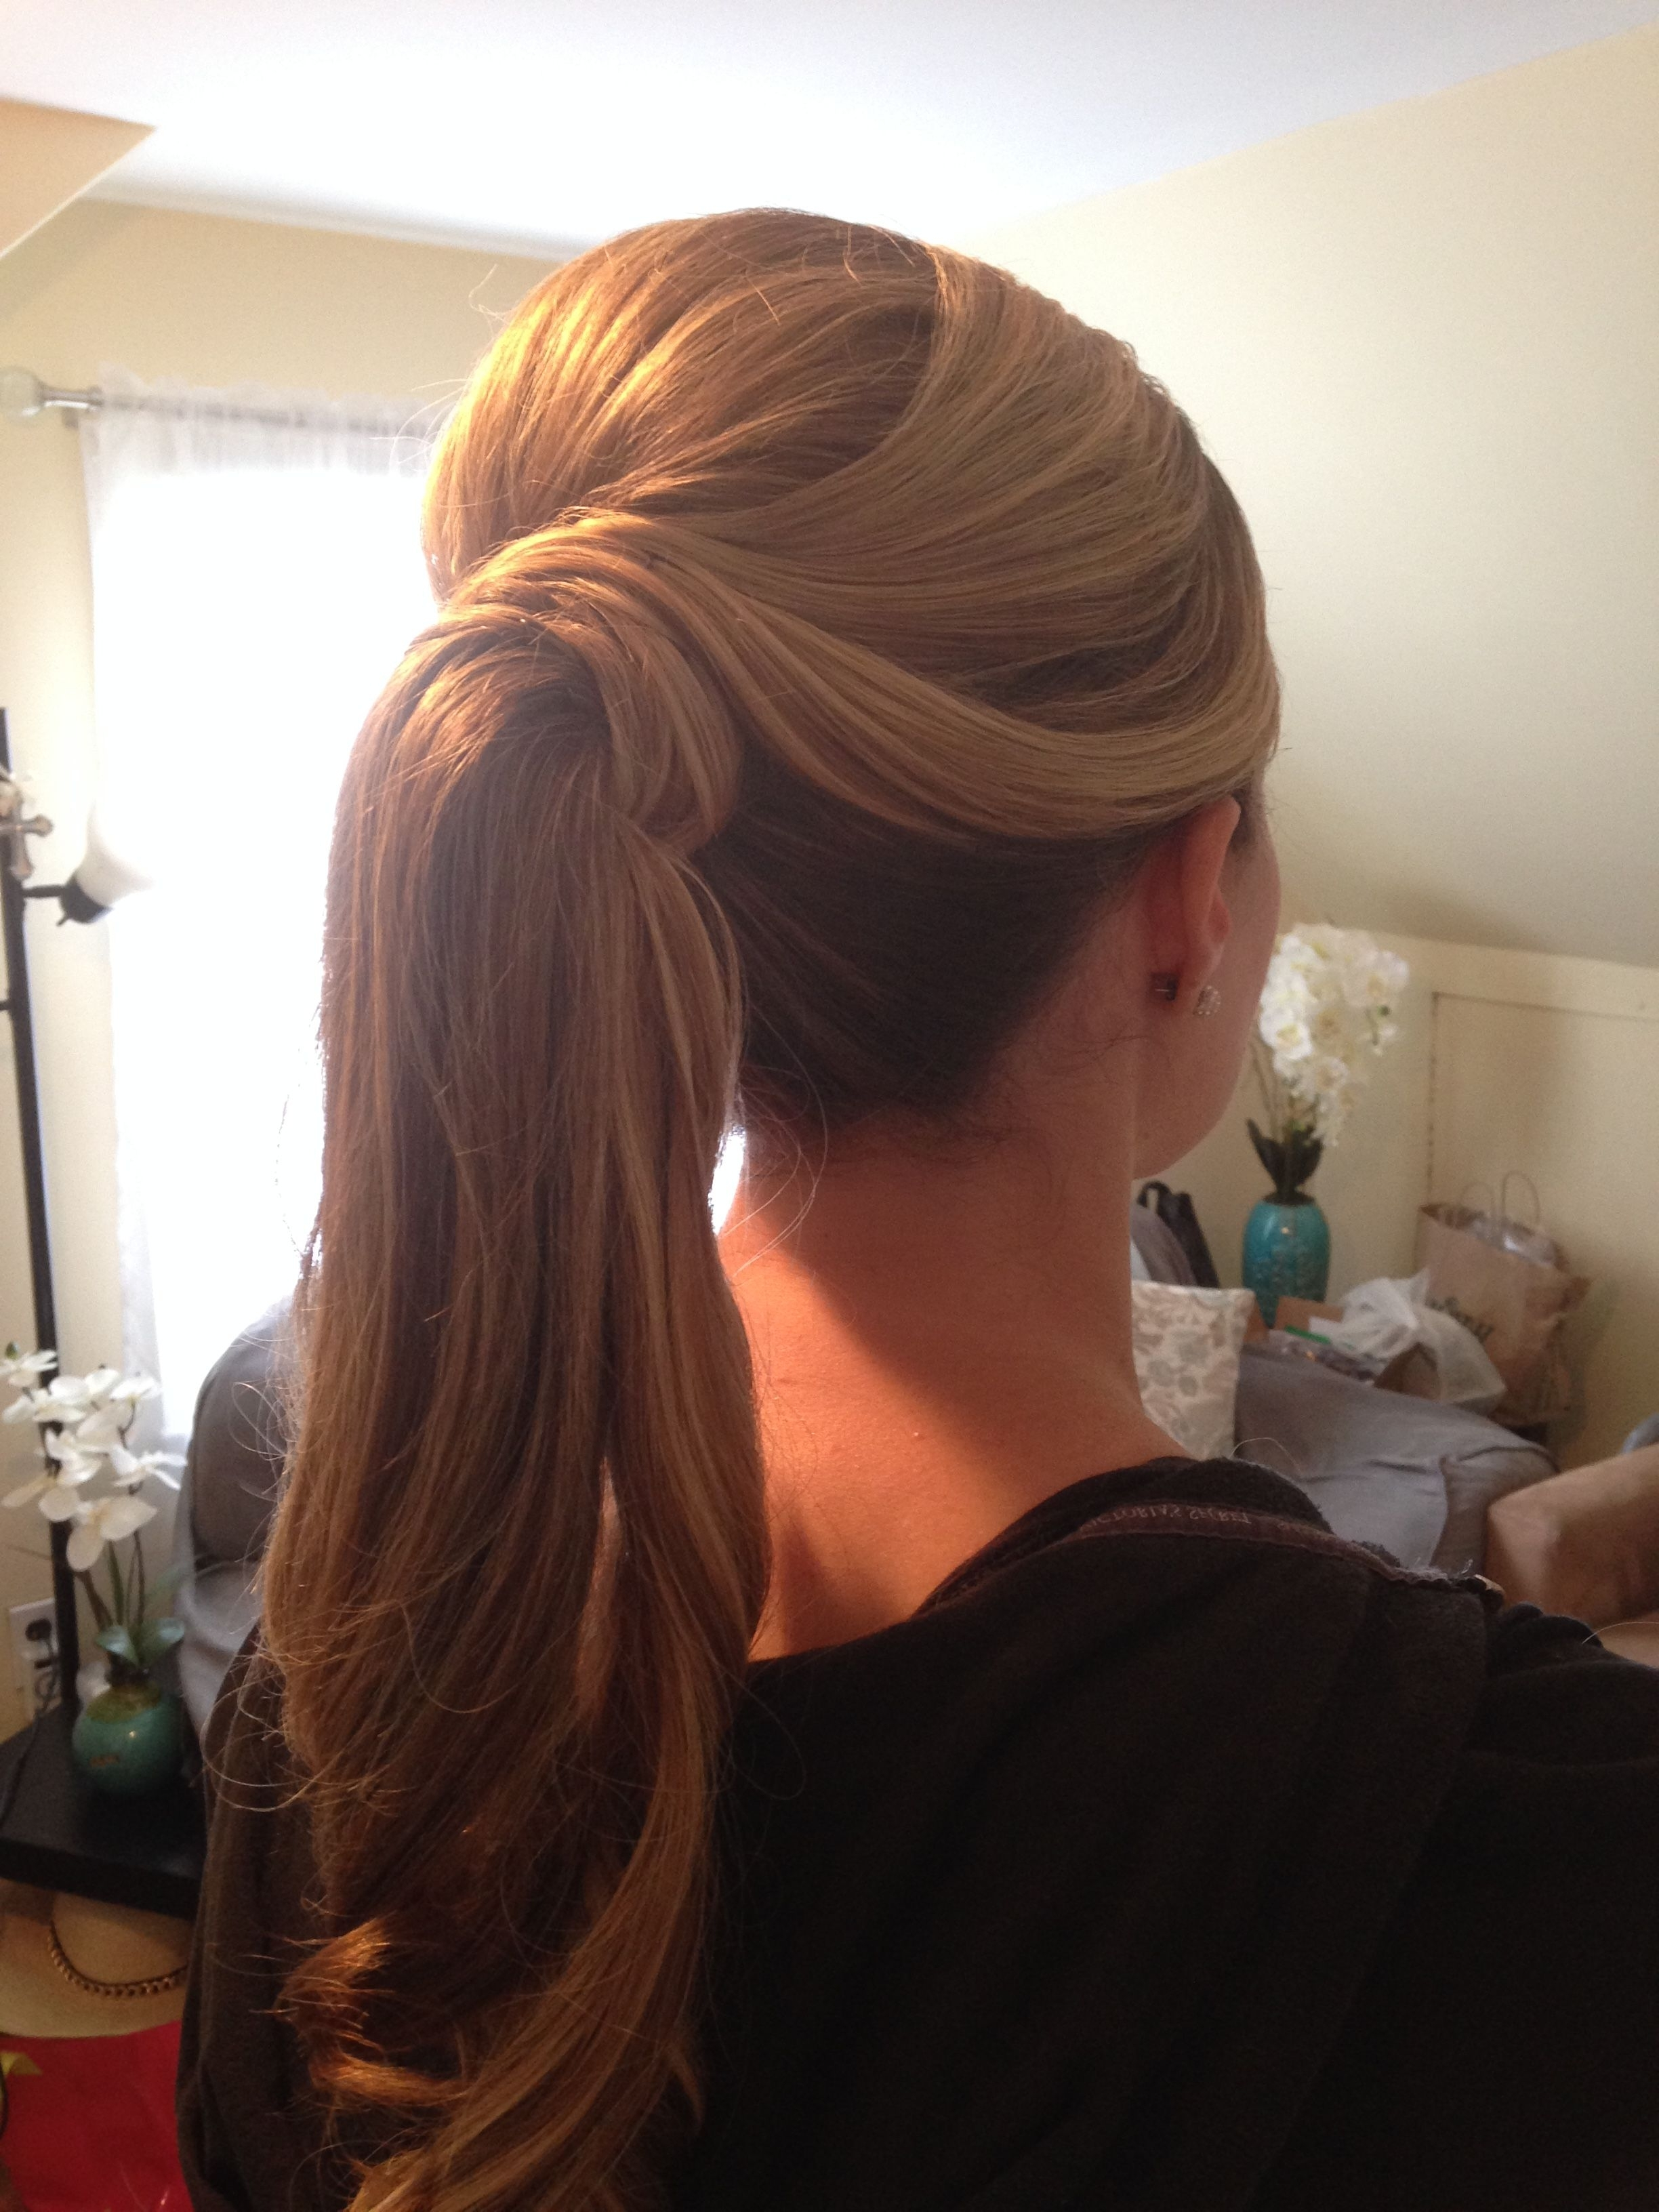 Fancy Ponytail Hairstyles Aka The Barbie Ponytail (View 3 of 20)